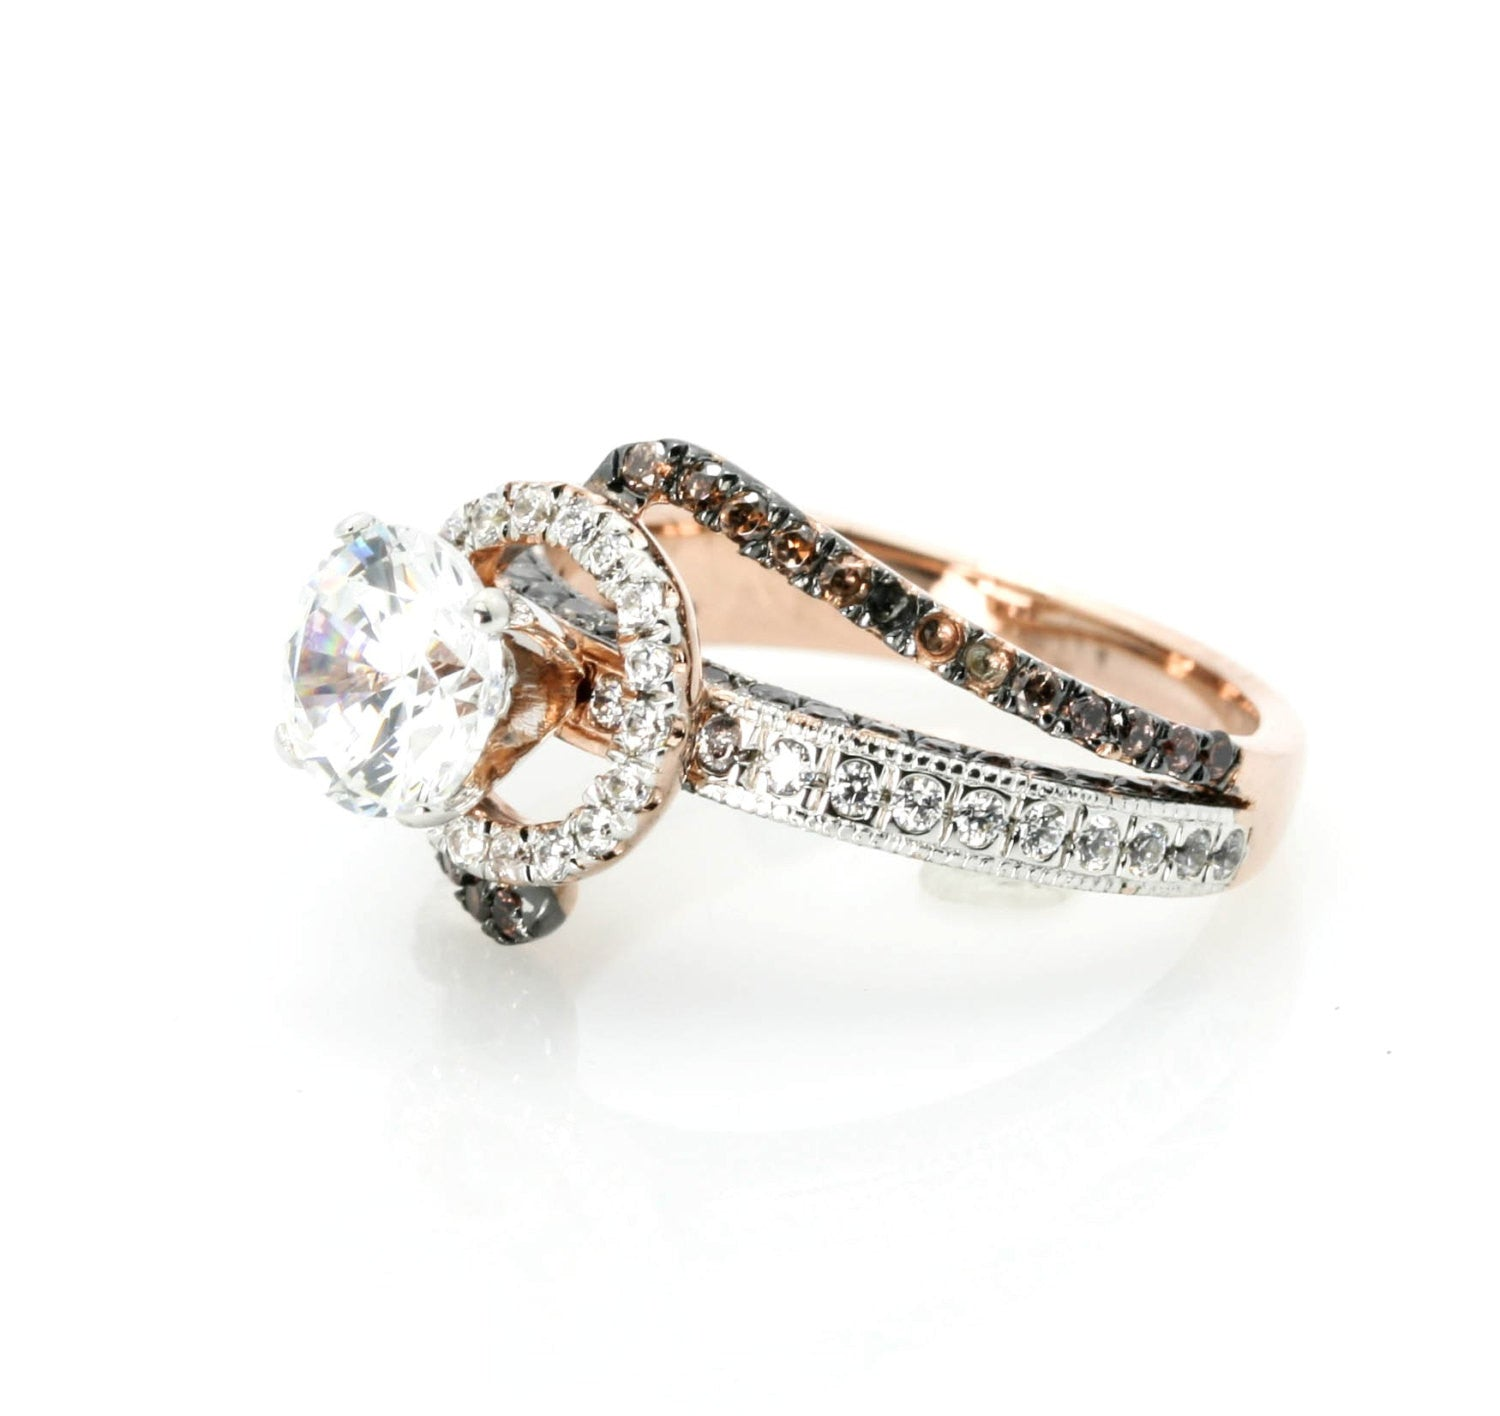 Unique Halo Rose Gold Diamond, 1 Carat Forever Brilliant Moissanite, Chocolate Brown Diamonds Engagement Ring, Anniversary Ring - FB94649